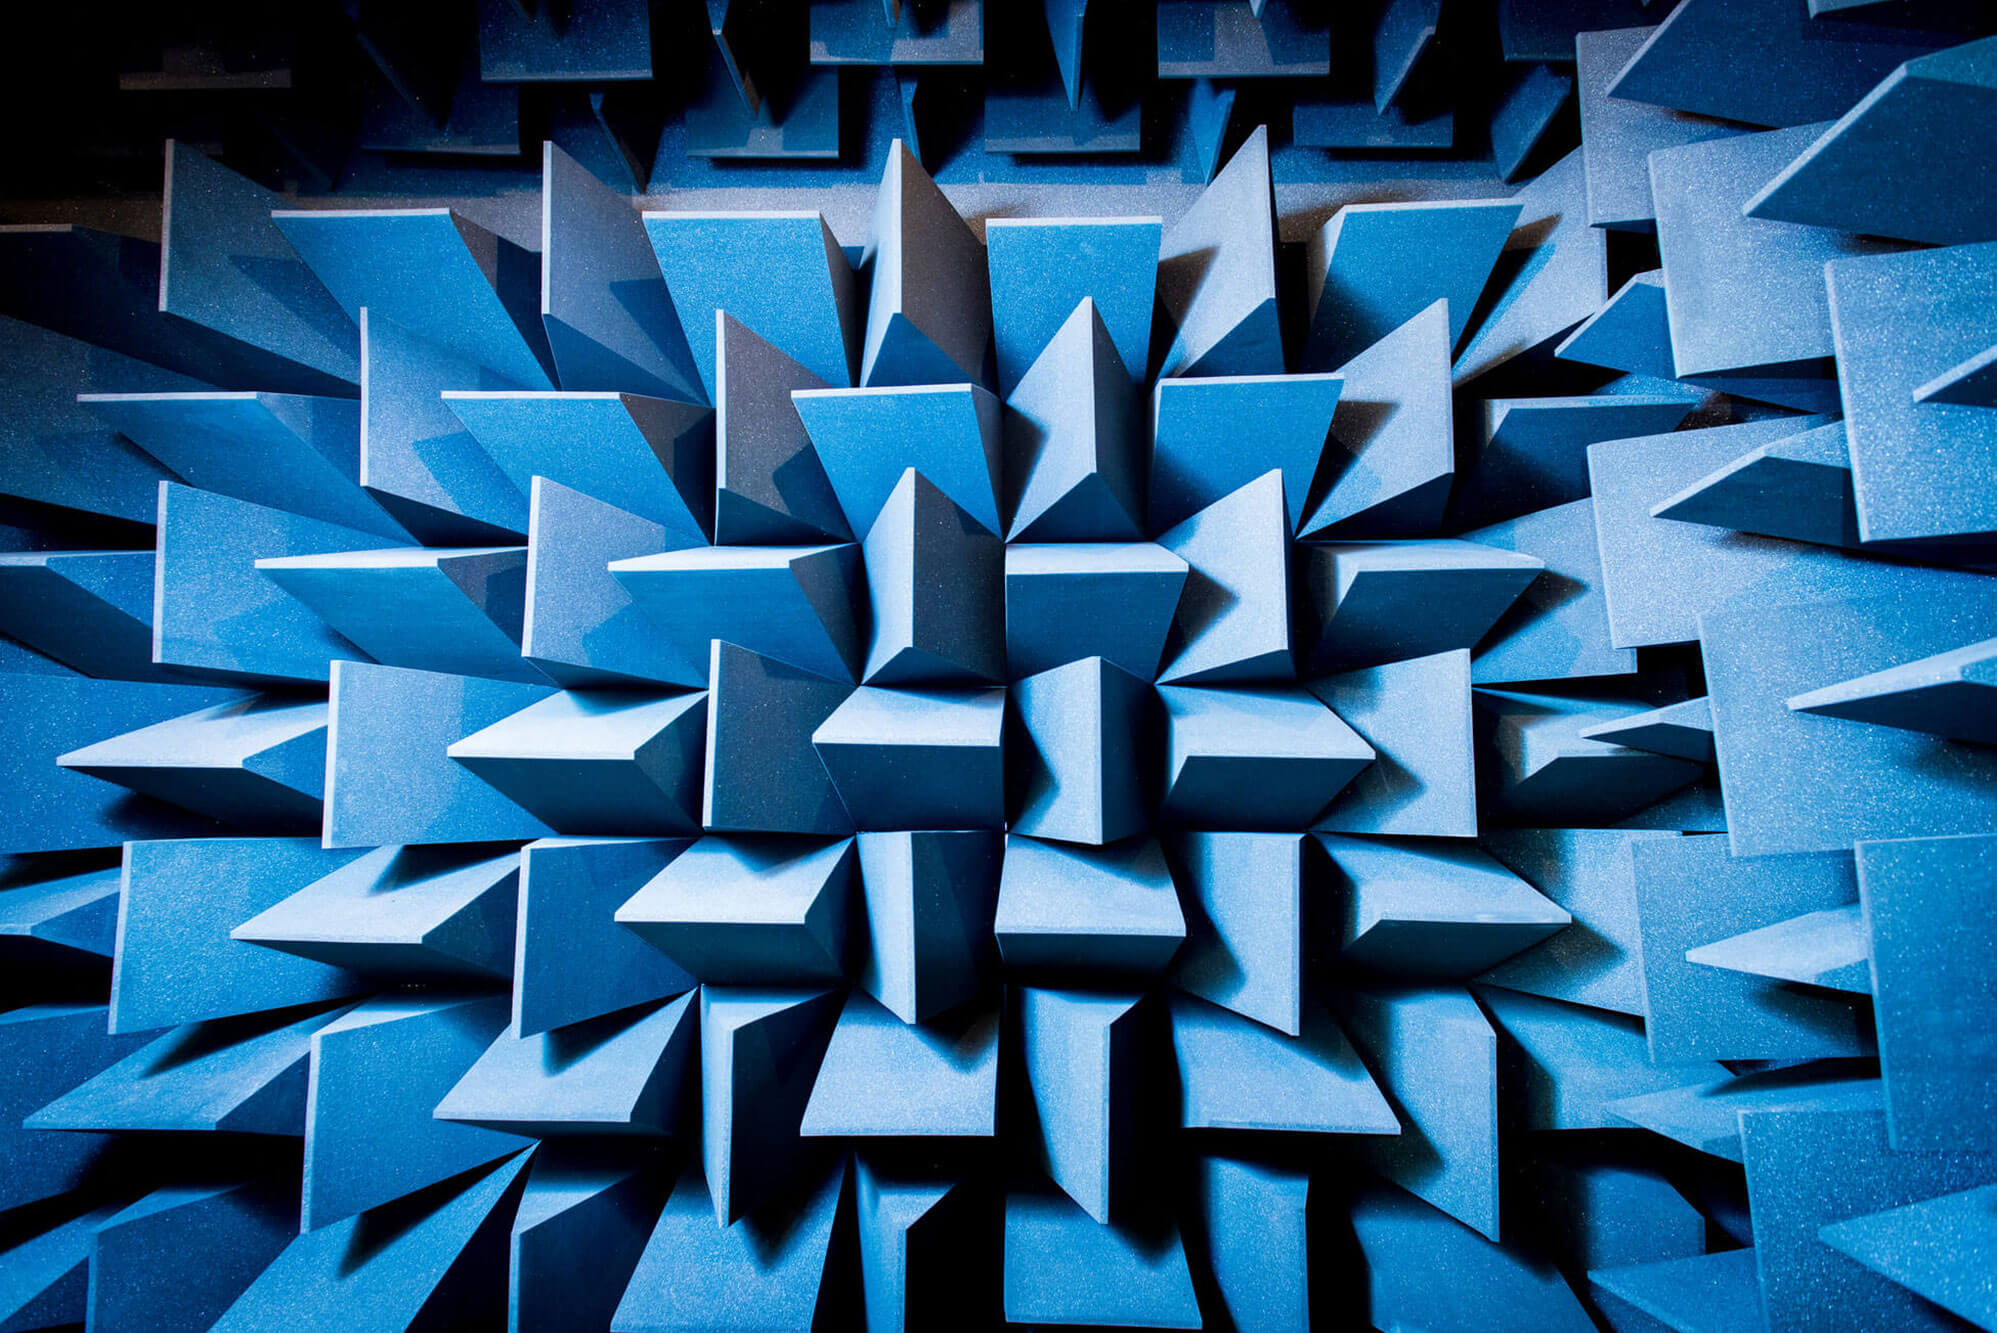 Anechoic chamber in the STEM Building at Markeaton Street